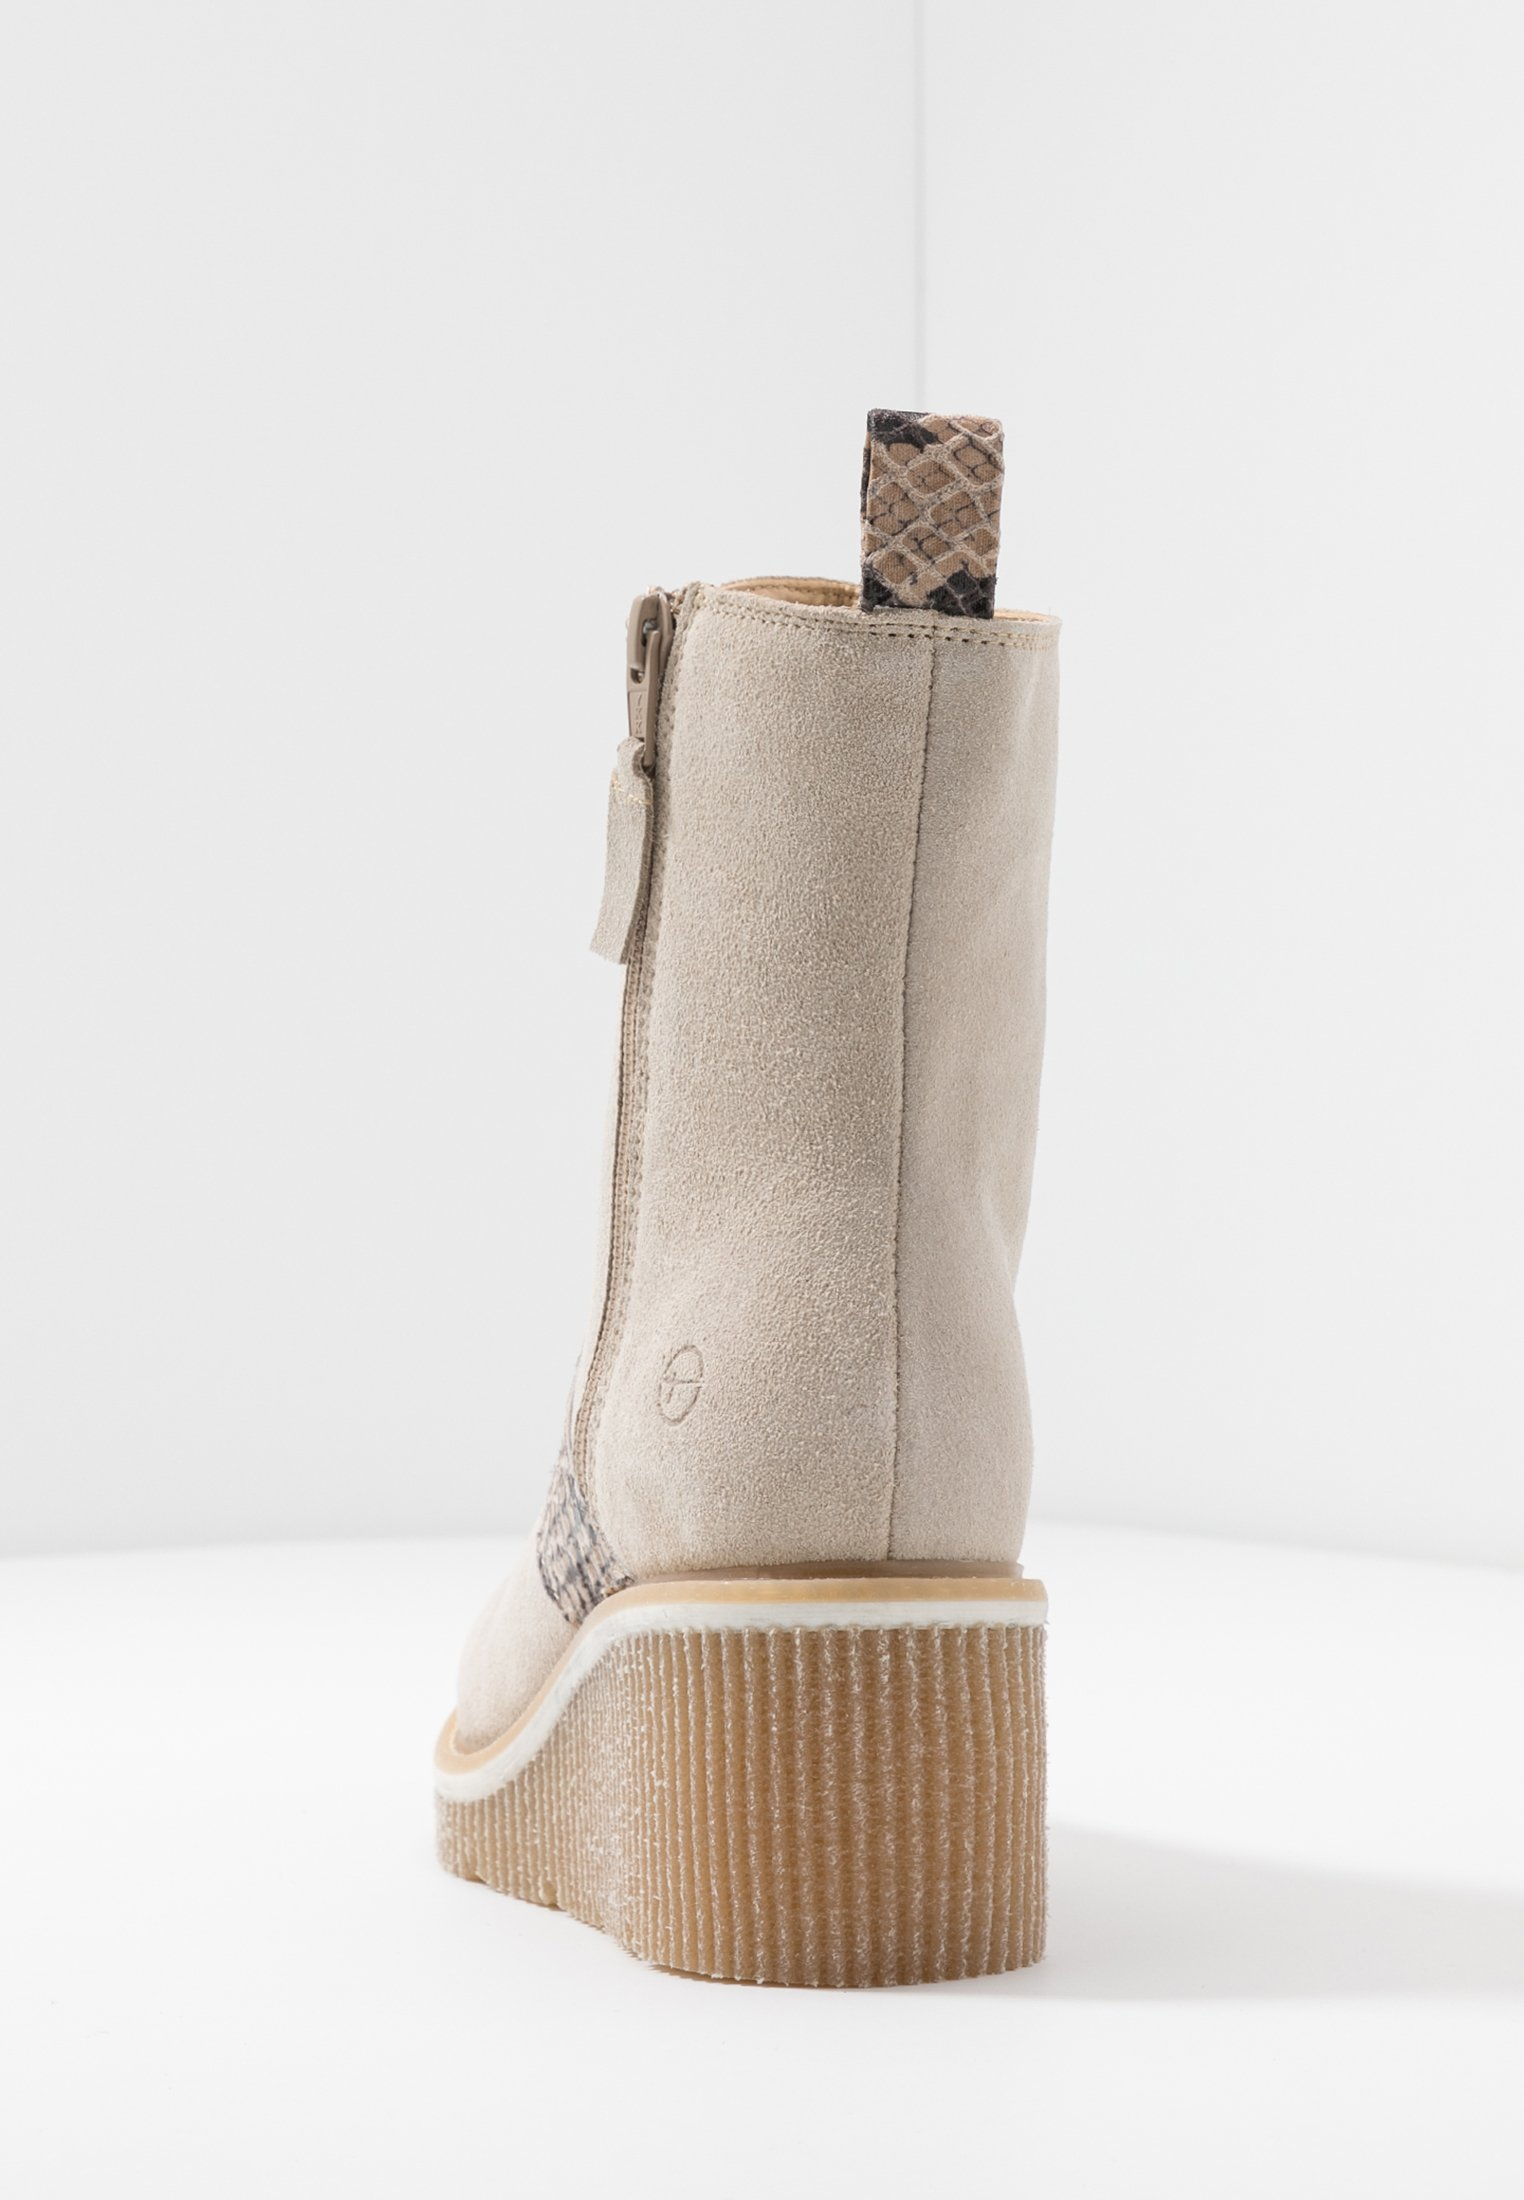 Tamaris Wedge Ankle Boots - beige